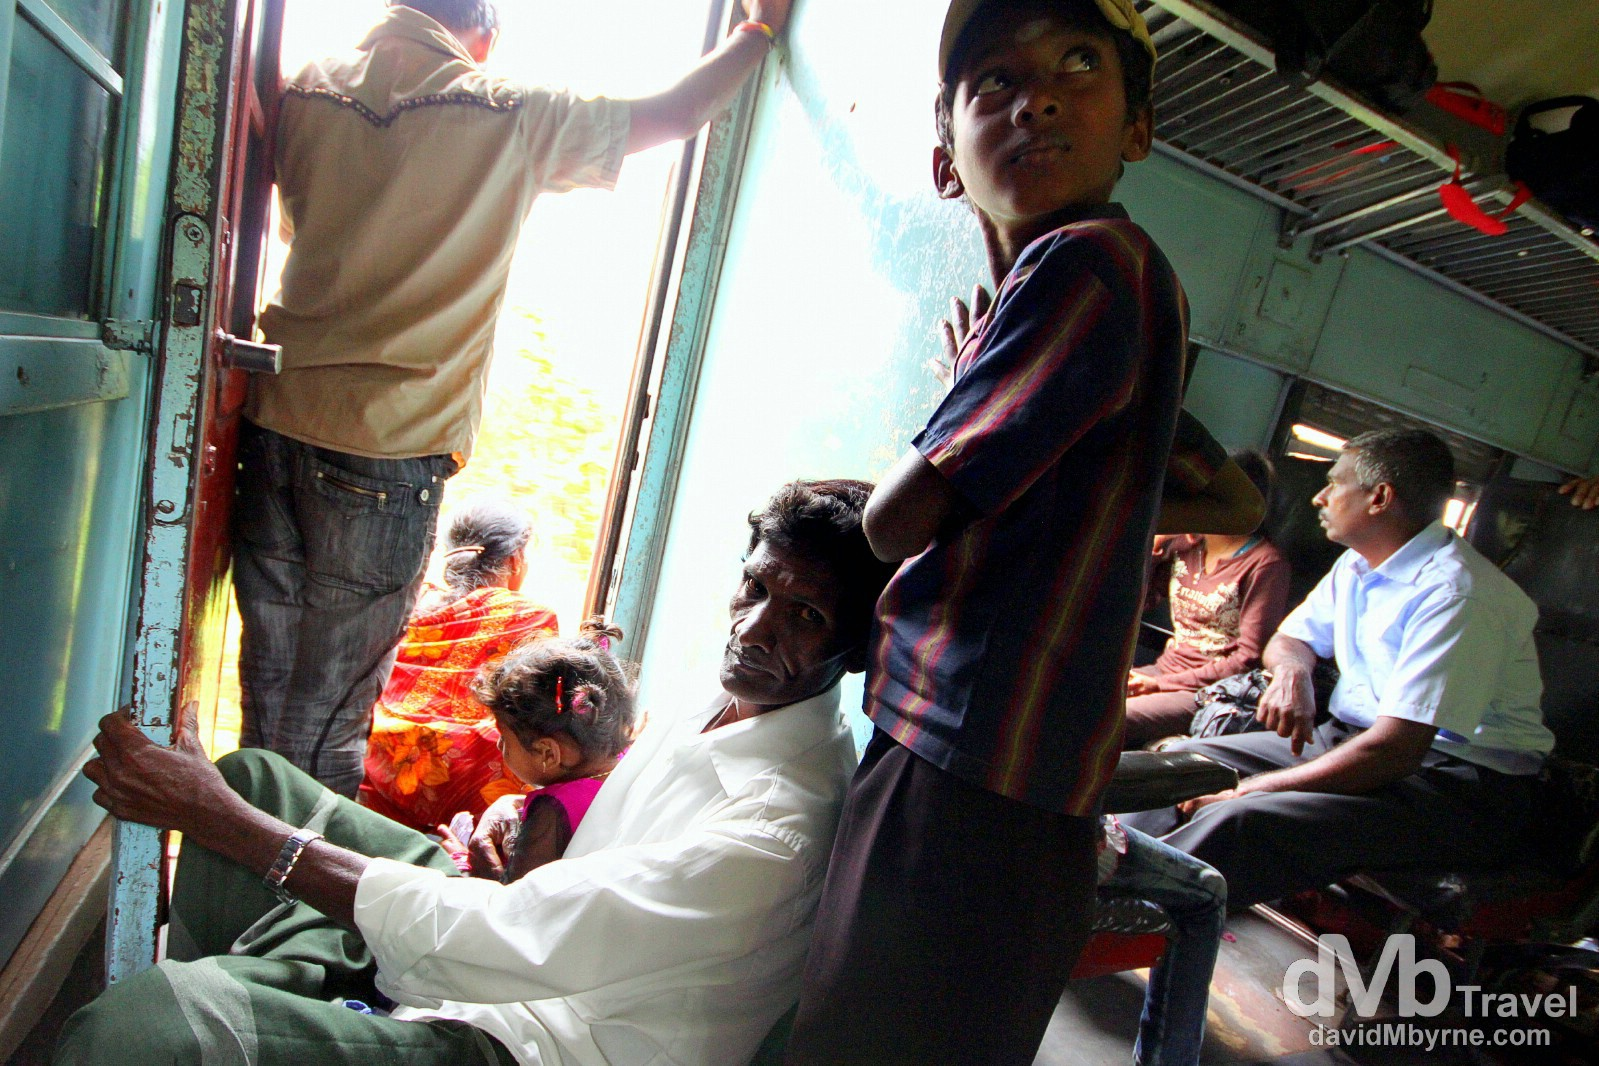 On the Kandy-bound train in central Sri Lanka. September 7th 2102.